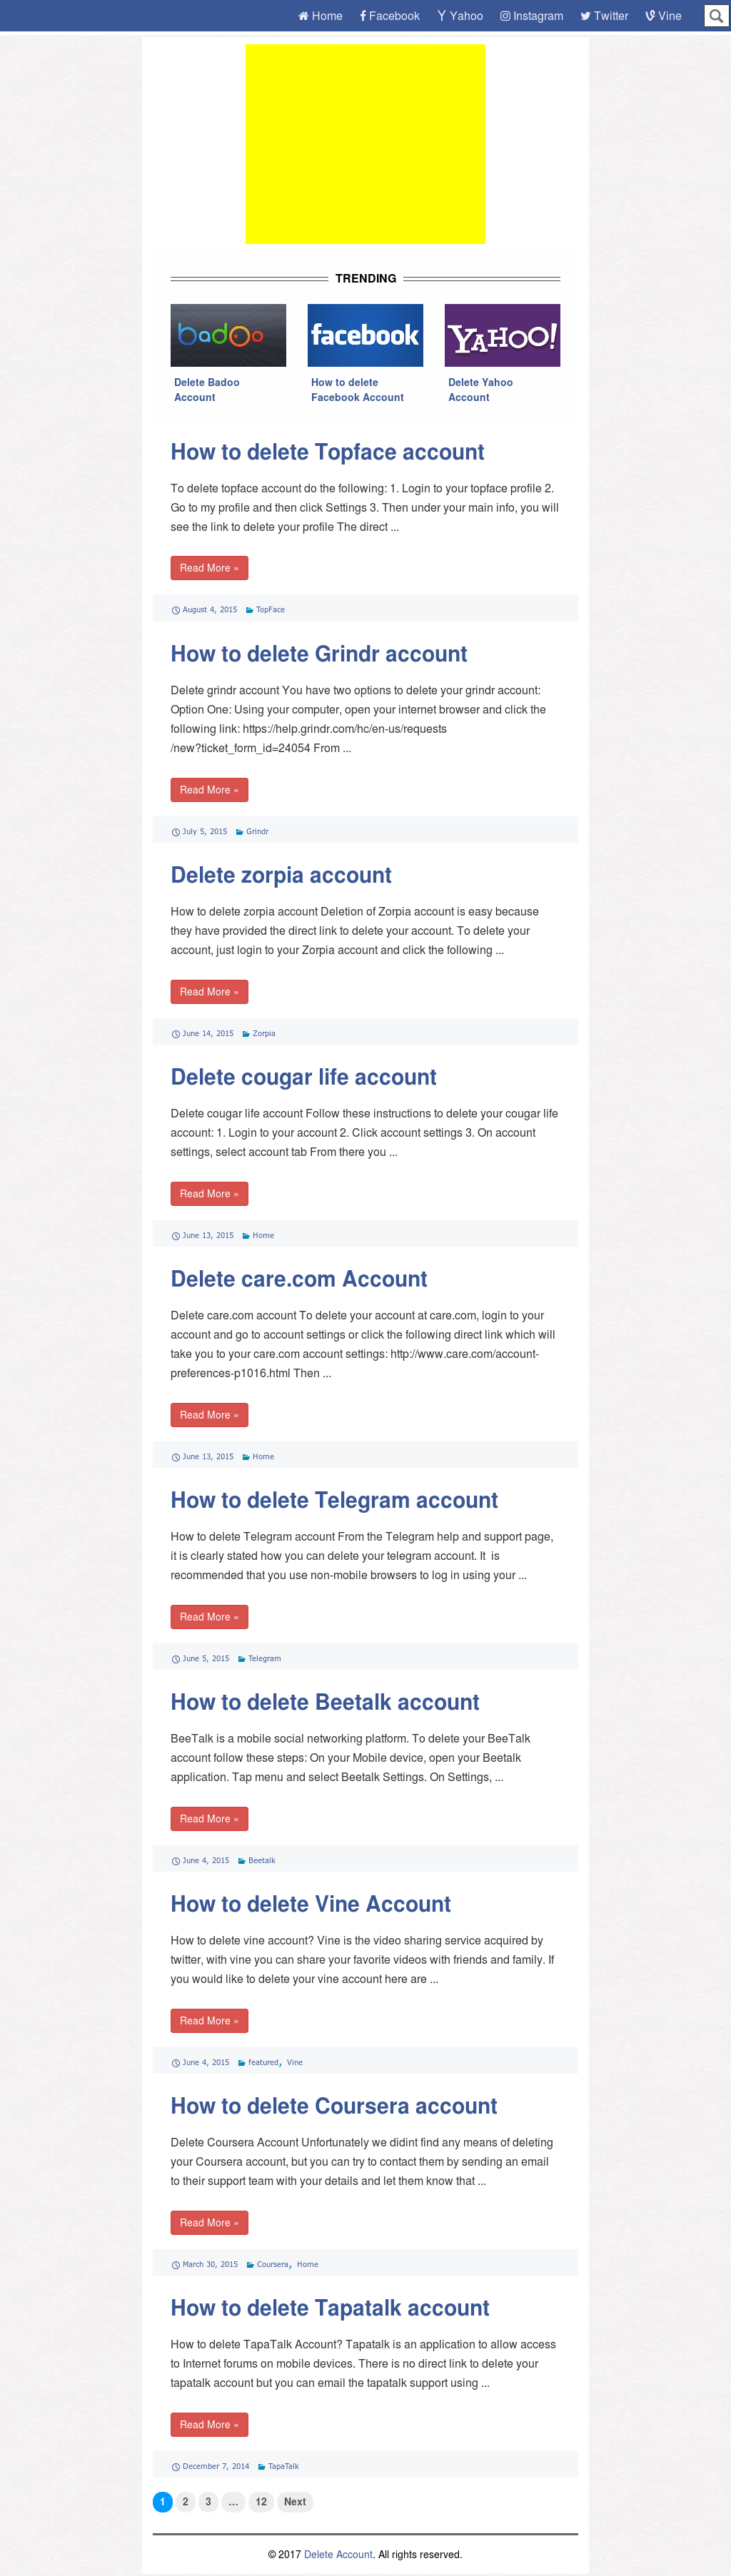 how to delete your website history